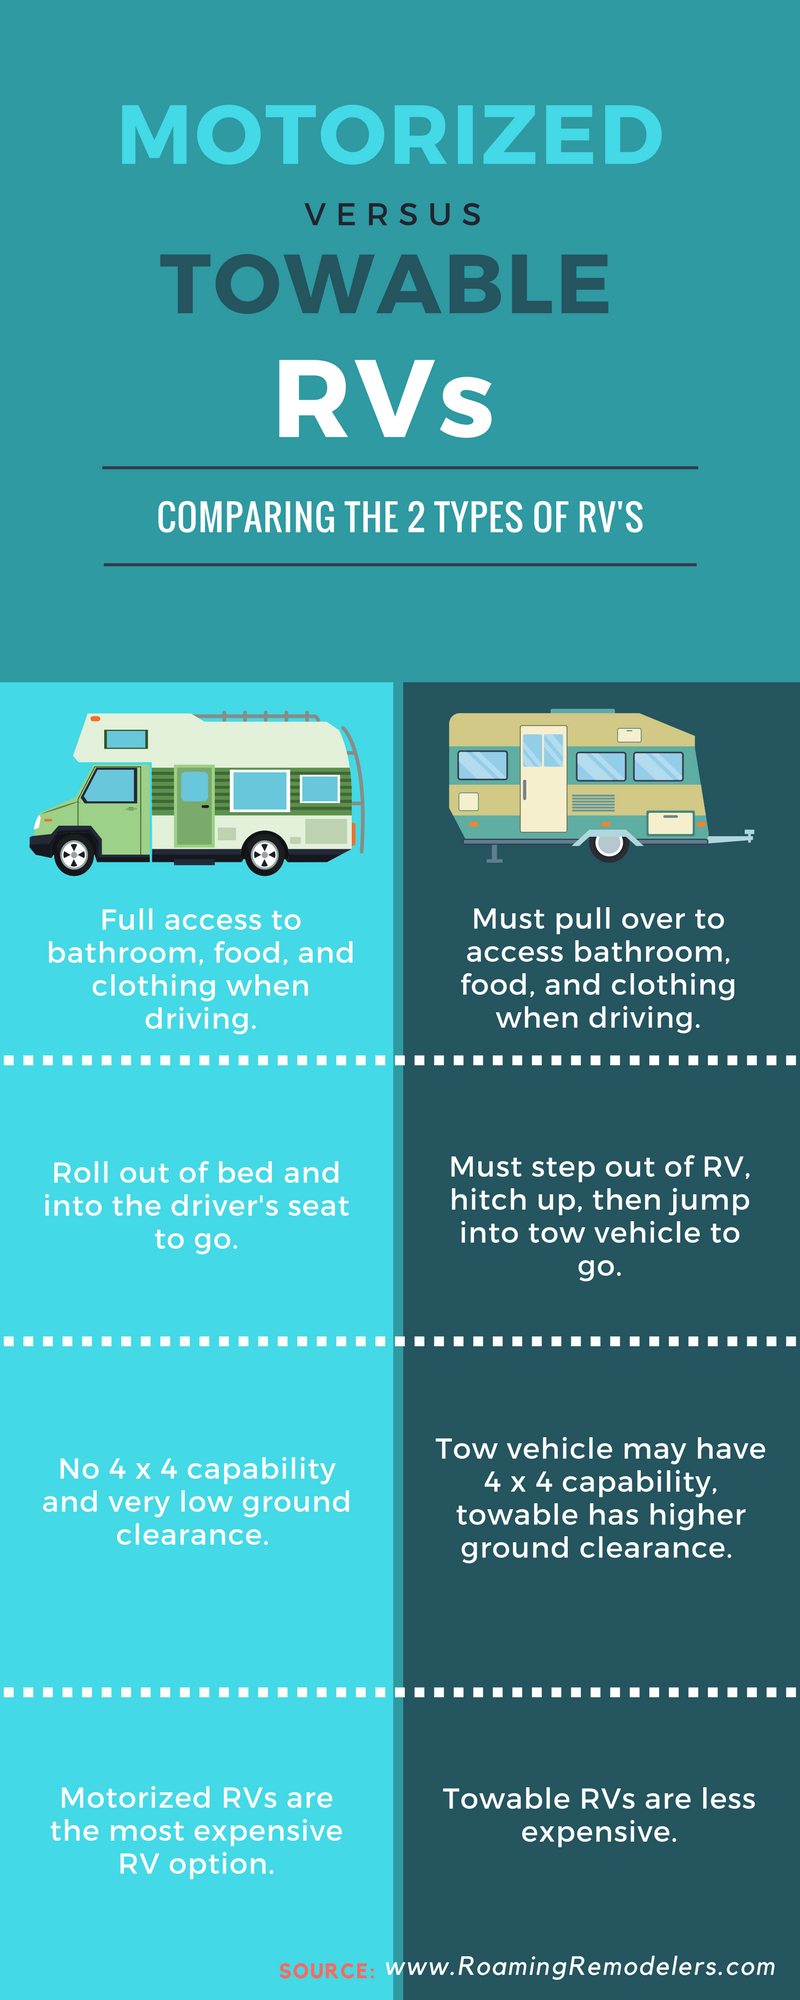 Motorized vs Towable RV Infographic.png